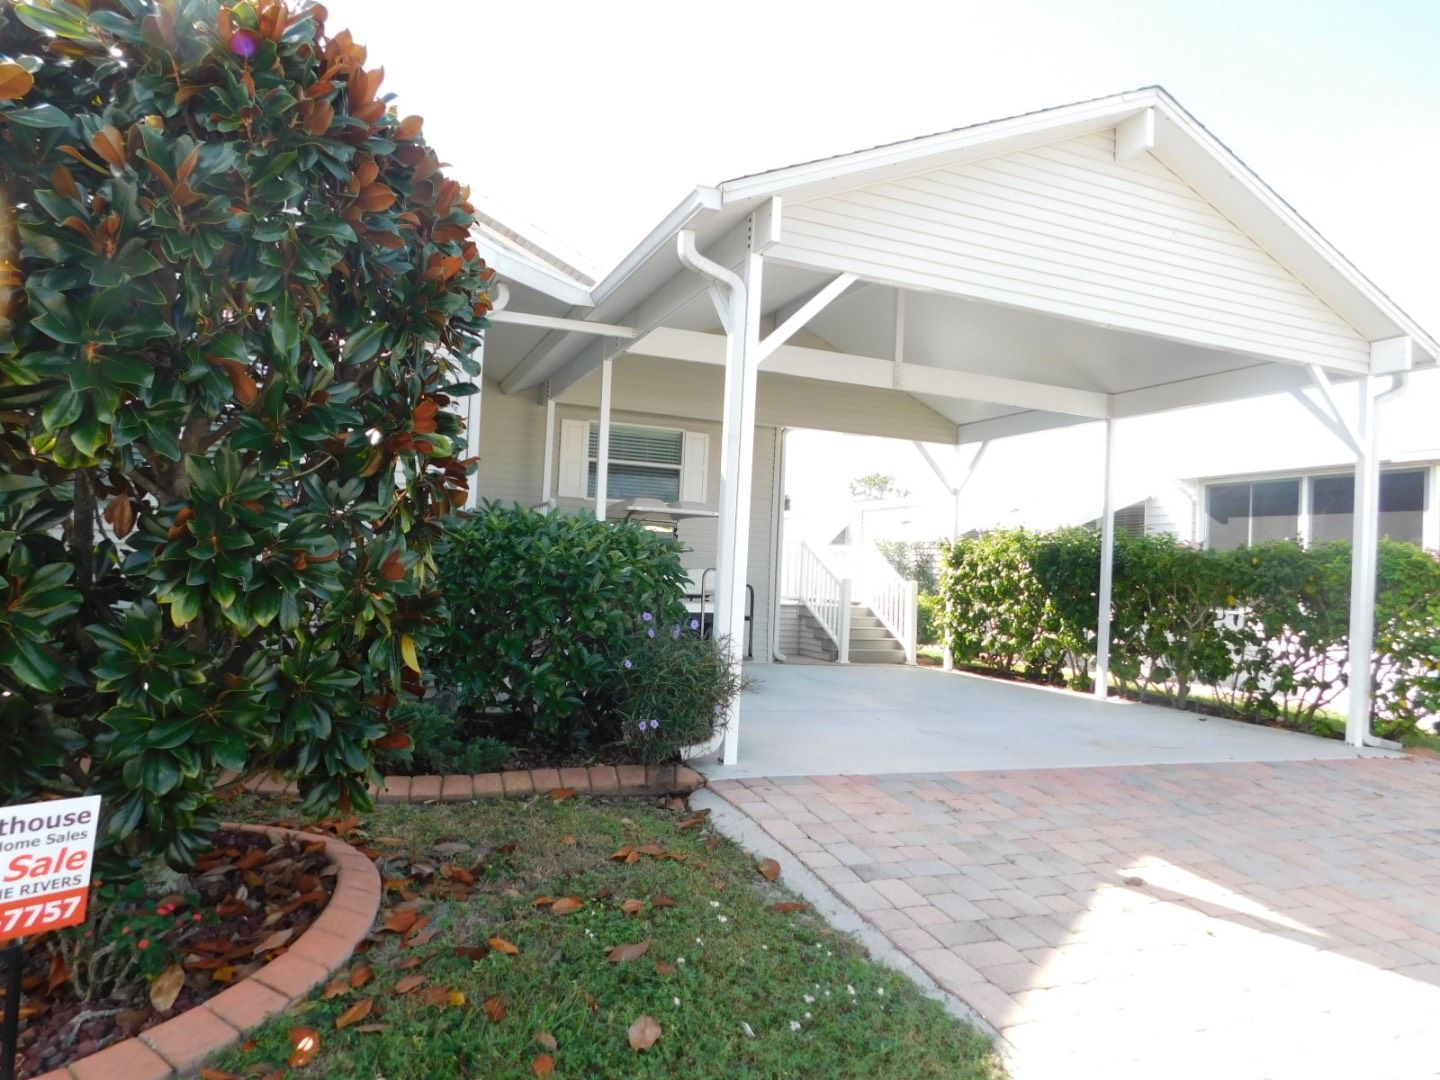 966 Cayman E, Venice, FL 34285 - 2 Bed, 2 Bath Mobile ... on foreclosure homes in south florida, boat sales florida, mobile home rentals in florida, atv sales florida, mobile home financing florida, mobile home buyers florida, mobile home communities florida, motorcycle sales florida, mobile home on the lake in florida, modular built homes in florida, cheap homes sale florida, luxury homes orlando florida, real estate florida, rent own mobile home florida, truck sales florida, bankruptcy home sale florida, mobile home supplies florida, mobile home insurance florida, mobile homes for rent in ga,